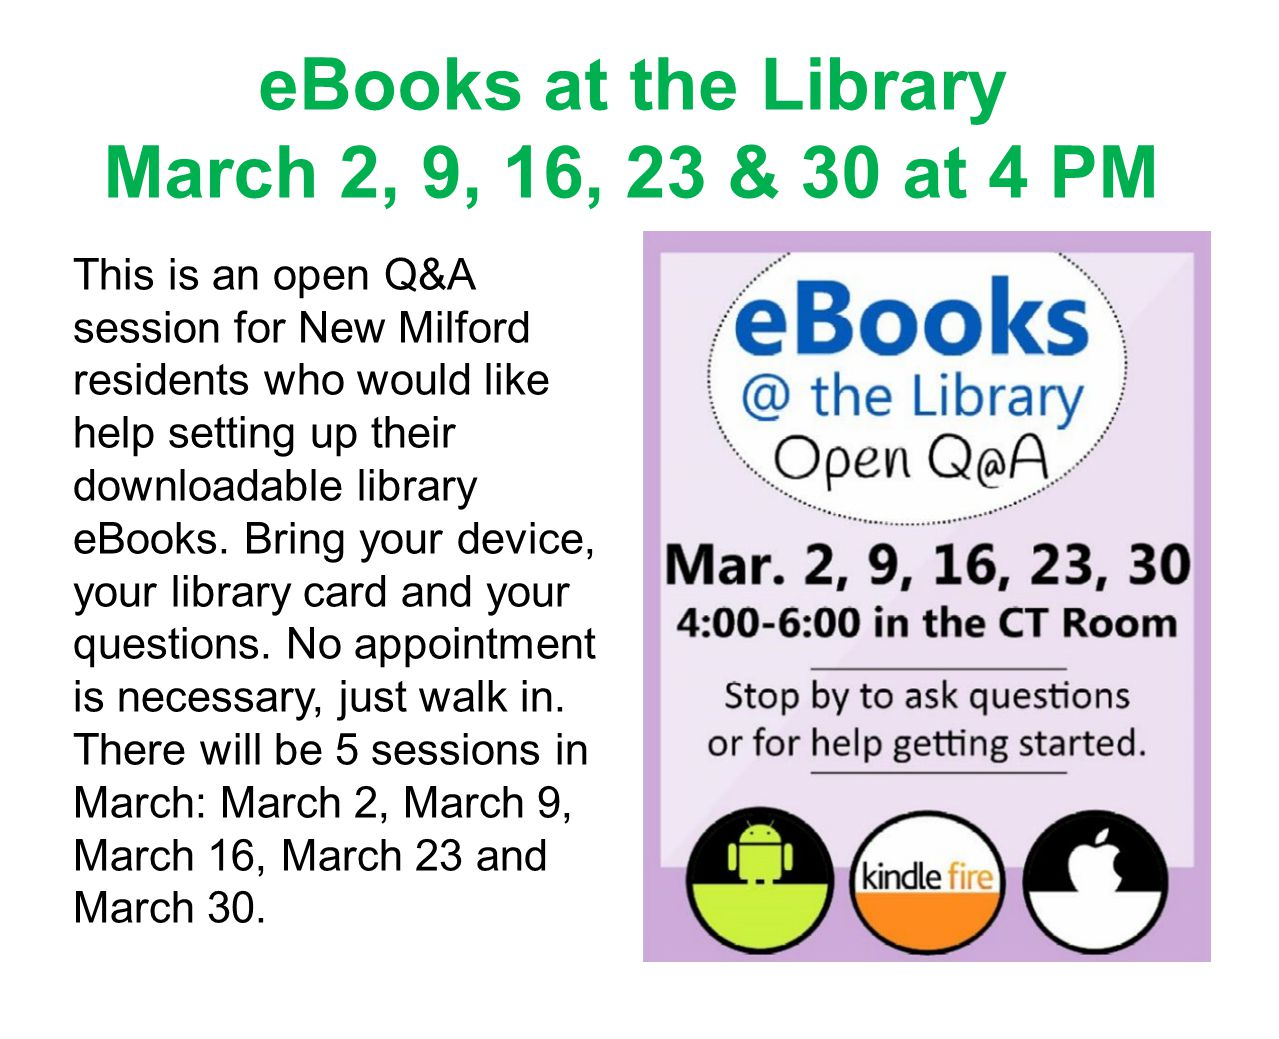 eBooks at the Library March 2, 9, 16, 23 & 30 at 4 PM This is an open Q&A session for New Milford residents who would like help setting up their downloadable library eBooks.